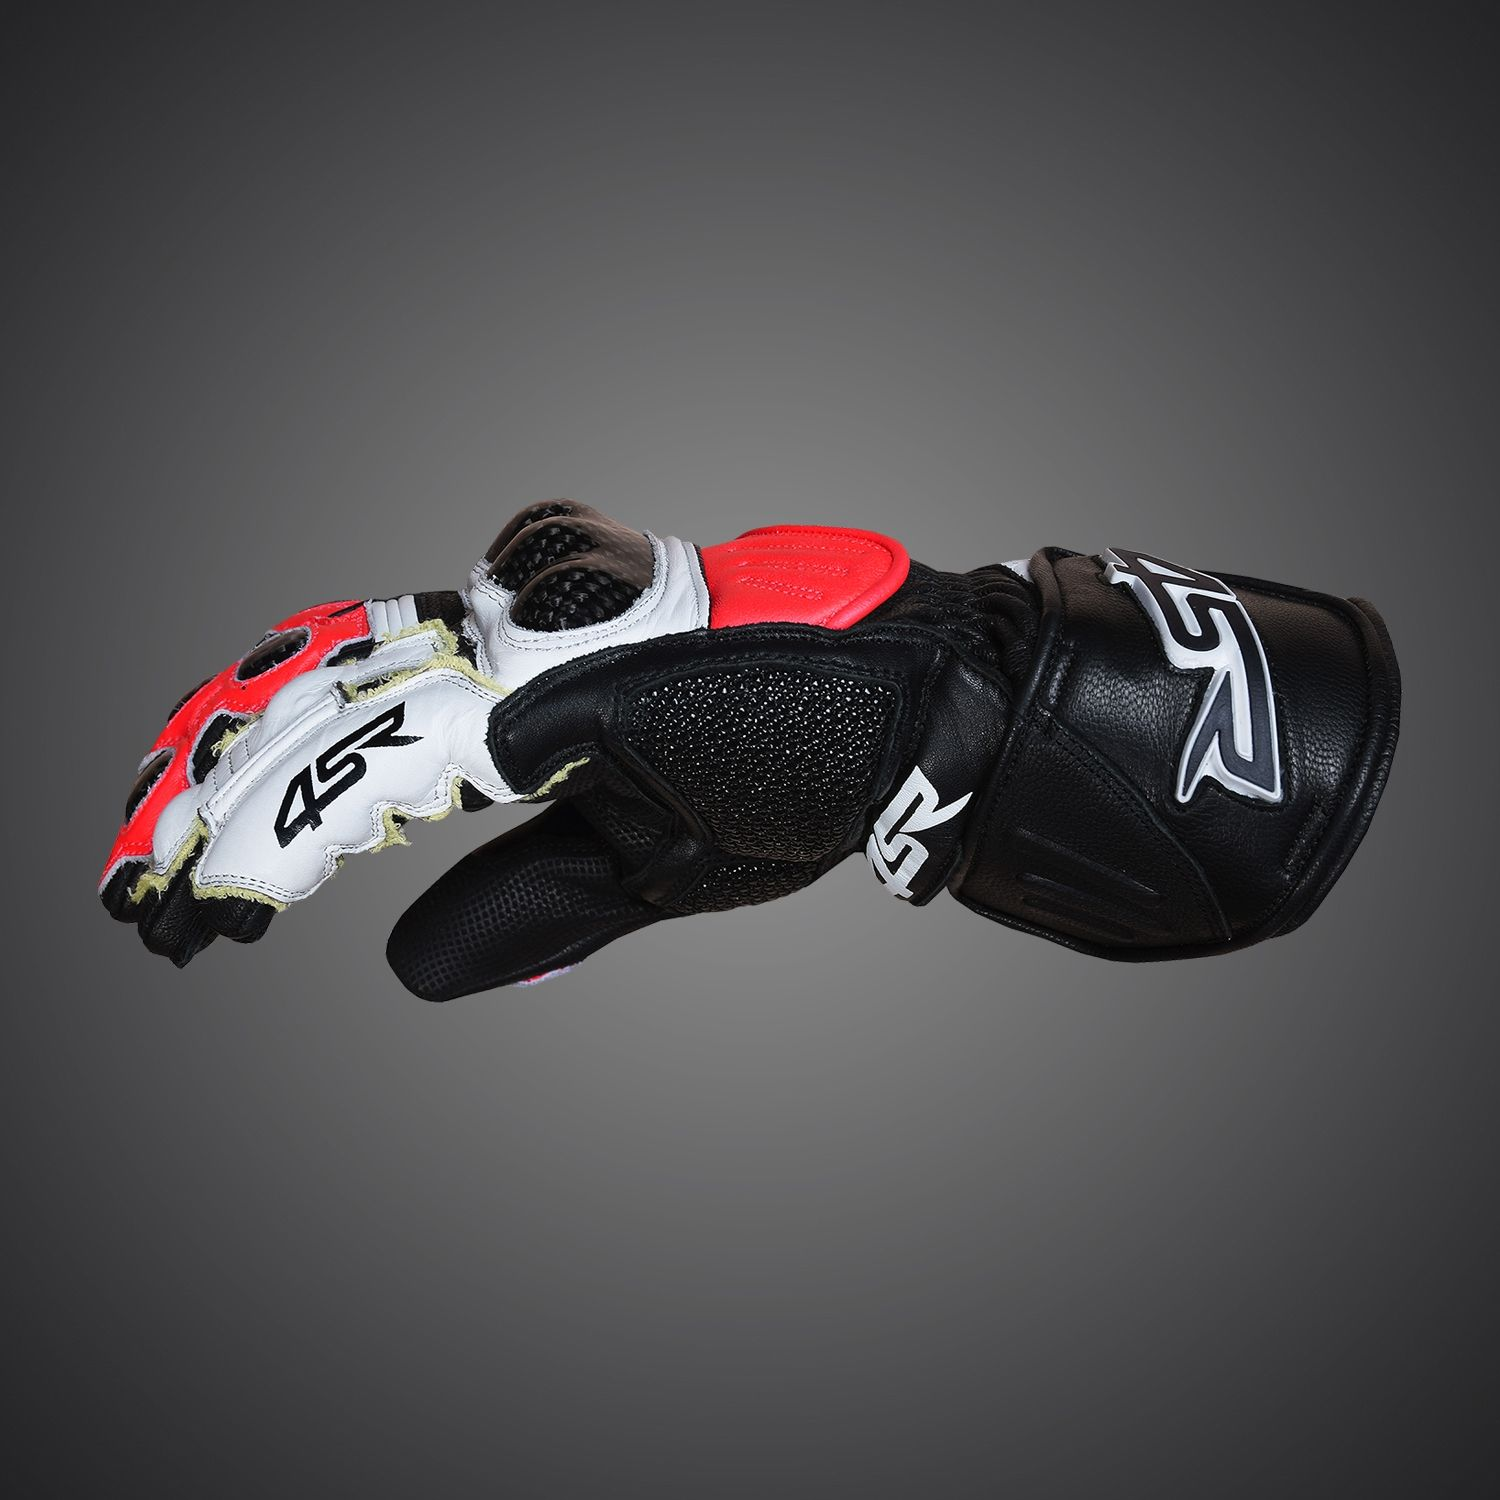 Motorcycle gloves victoria bc - Our 96 Stingray Sports Motorcycle Gloves Were Developed In Conjunction With World Class Superbike Racers The Emphasis As Always Was On Safety